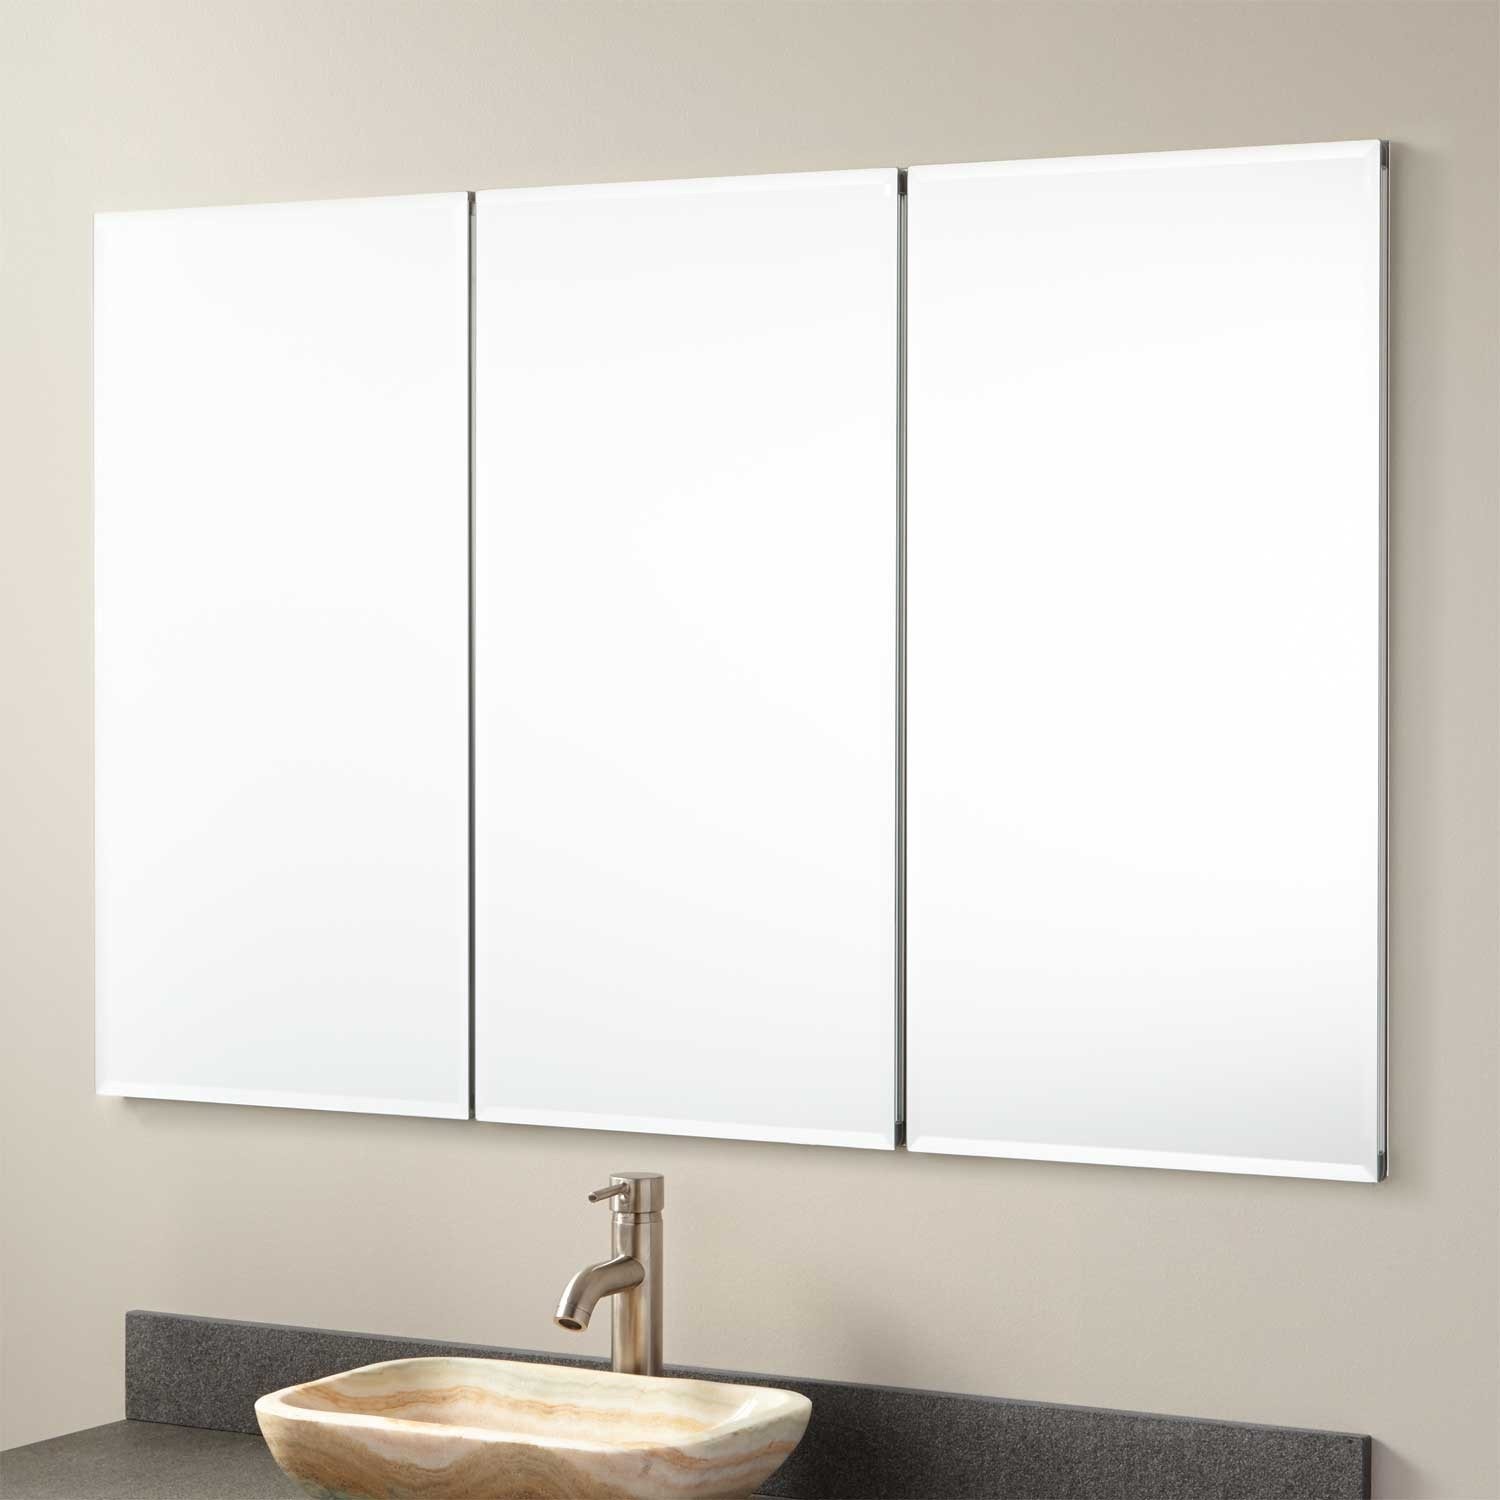 Permalink to Recessed Bathroom Mirror Medicine Cabinets